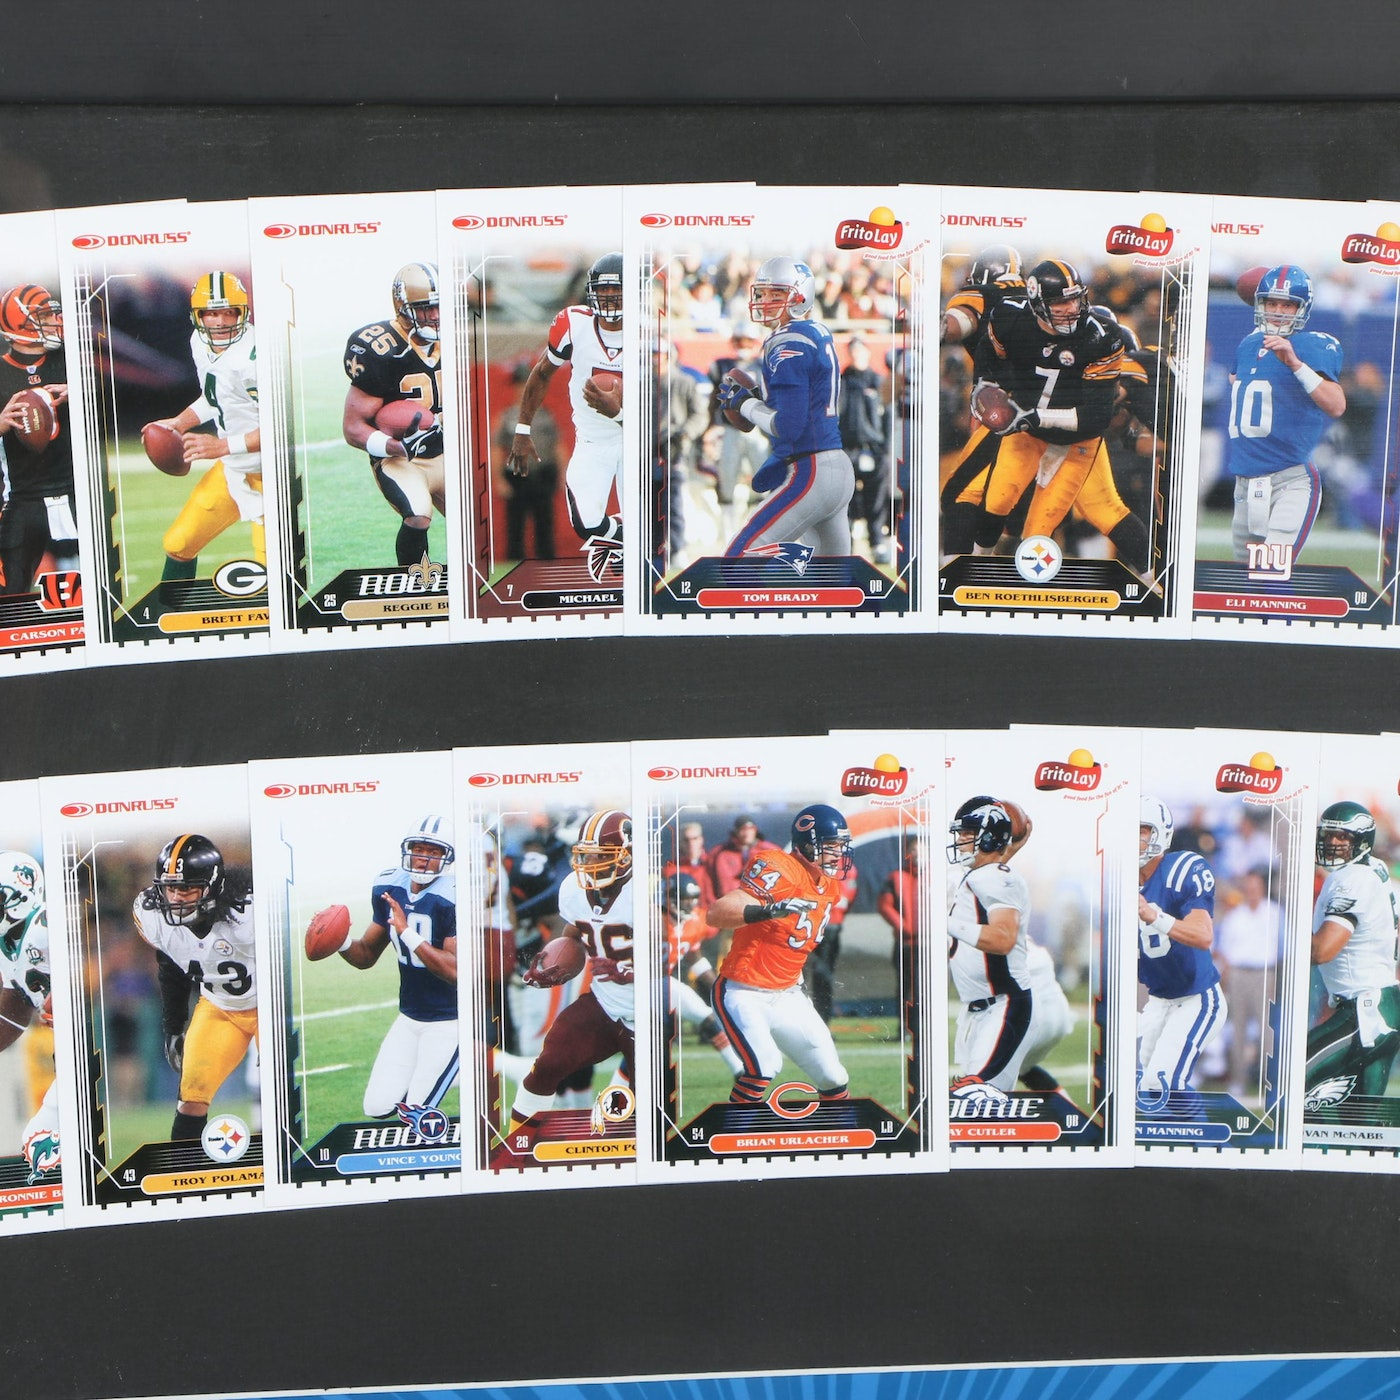 Framed Frito-Lay Multipack And Donruss Collectible NFL